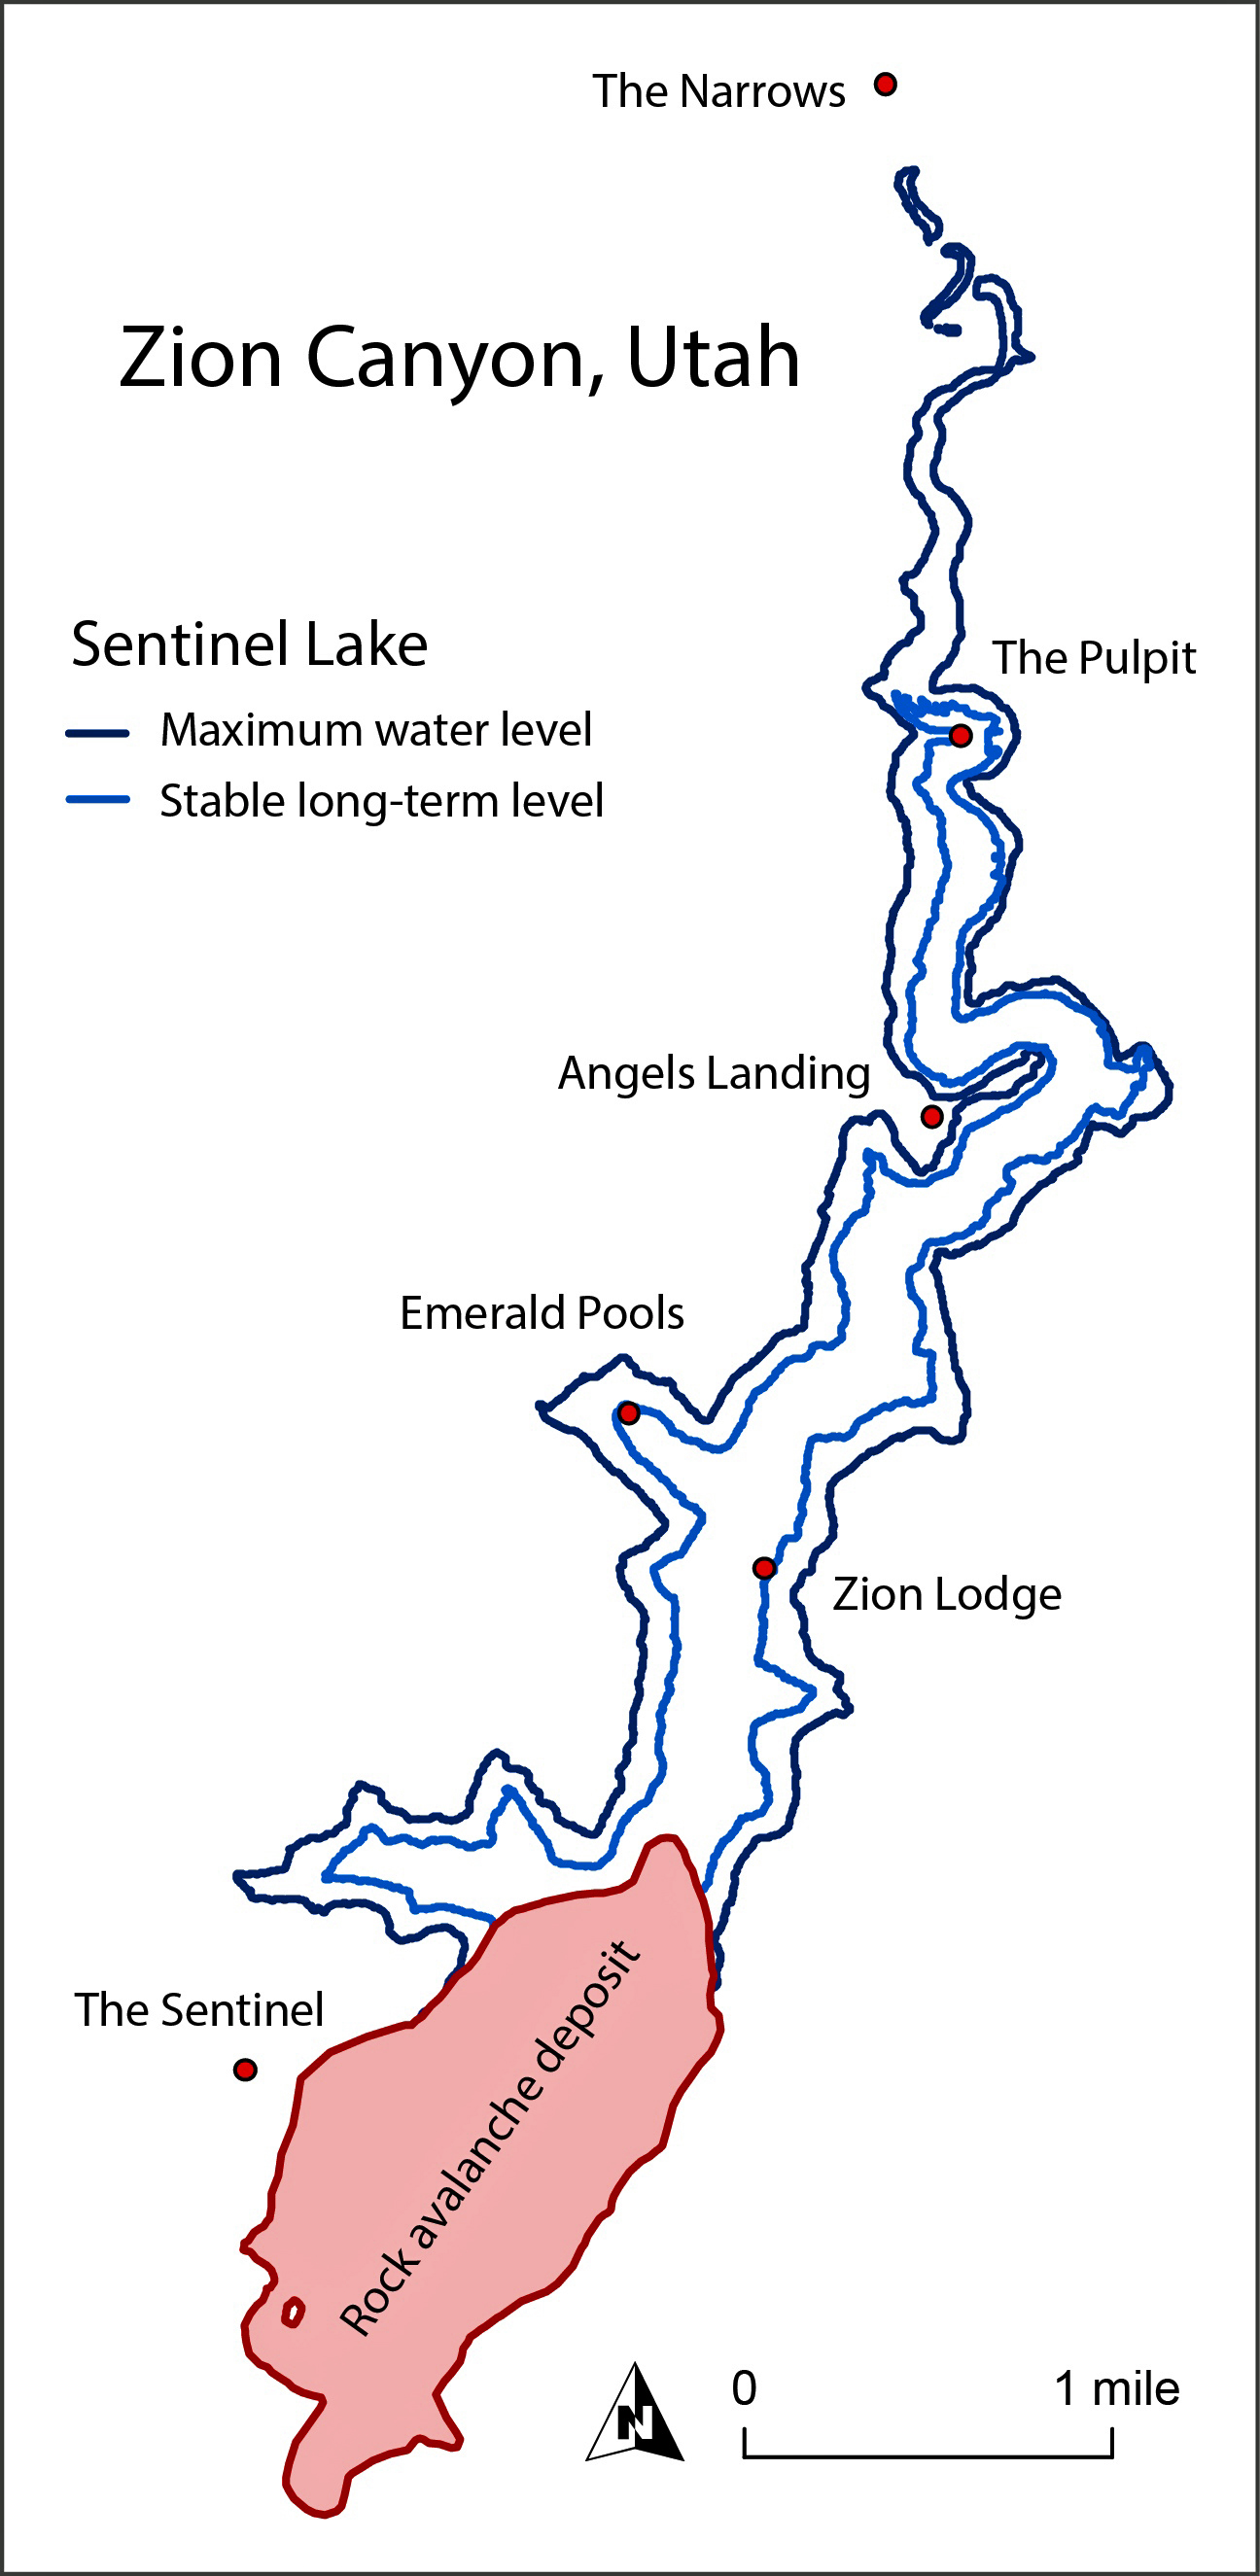 This map shows the location of the huge Sentinel landslide in Utah's Zion Canyon and the lake that formed behind it when the slide dammed the ancient Virgin River. A new University of Utah study indicates the landslide happened 4,800 years ago and that the lake lasted until it filled with sediment about 4,100 years ago. That is why the canyon floor is flat unlike steep, narrow canyons nearby.